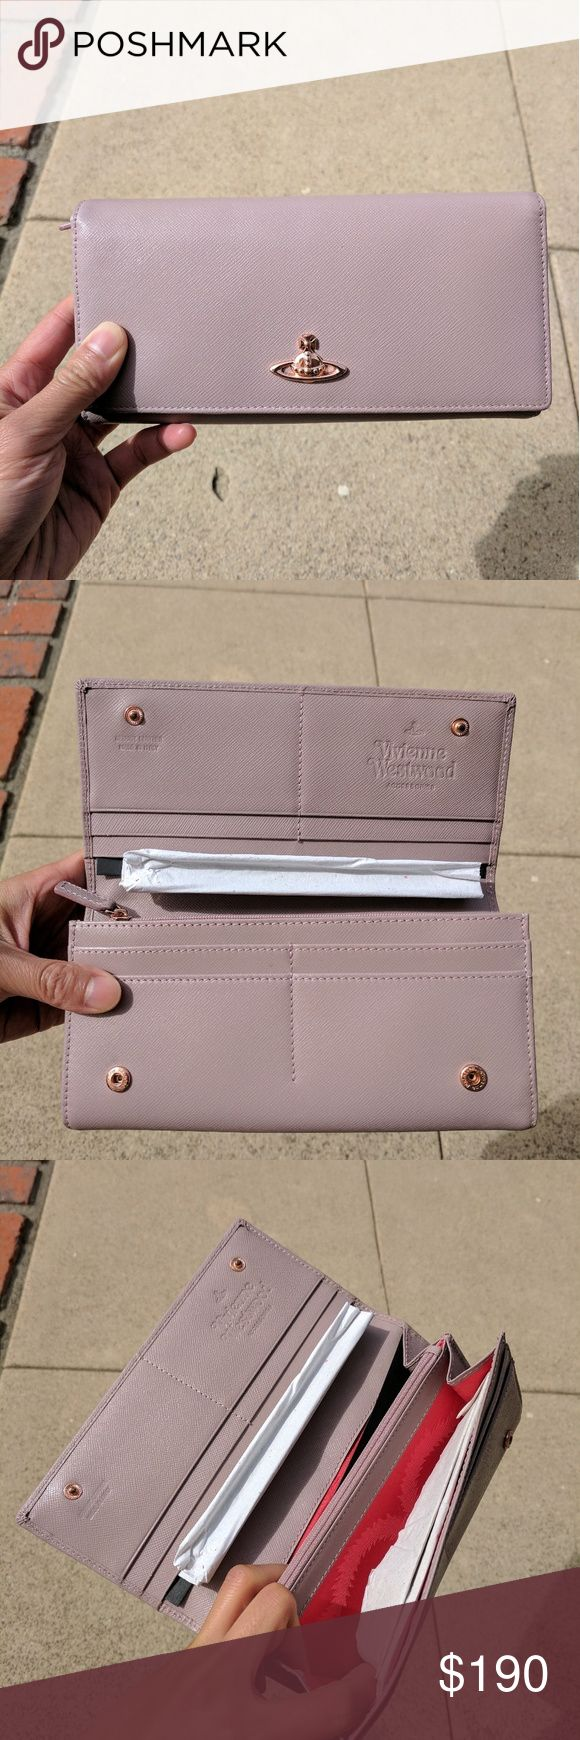 LIKE NEW Vivienne Westwood pink leather wallet Like new condition. Only used once! Vivienne Westwood Bags Wallets